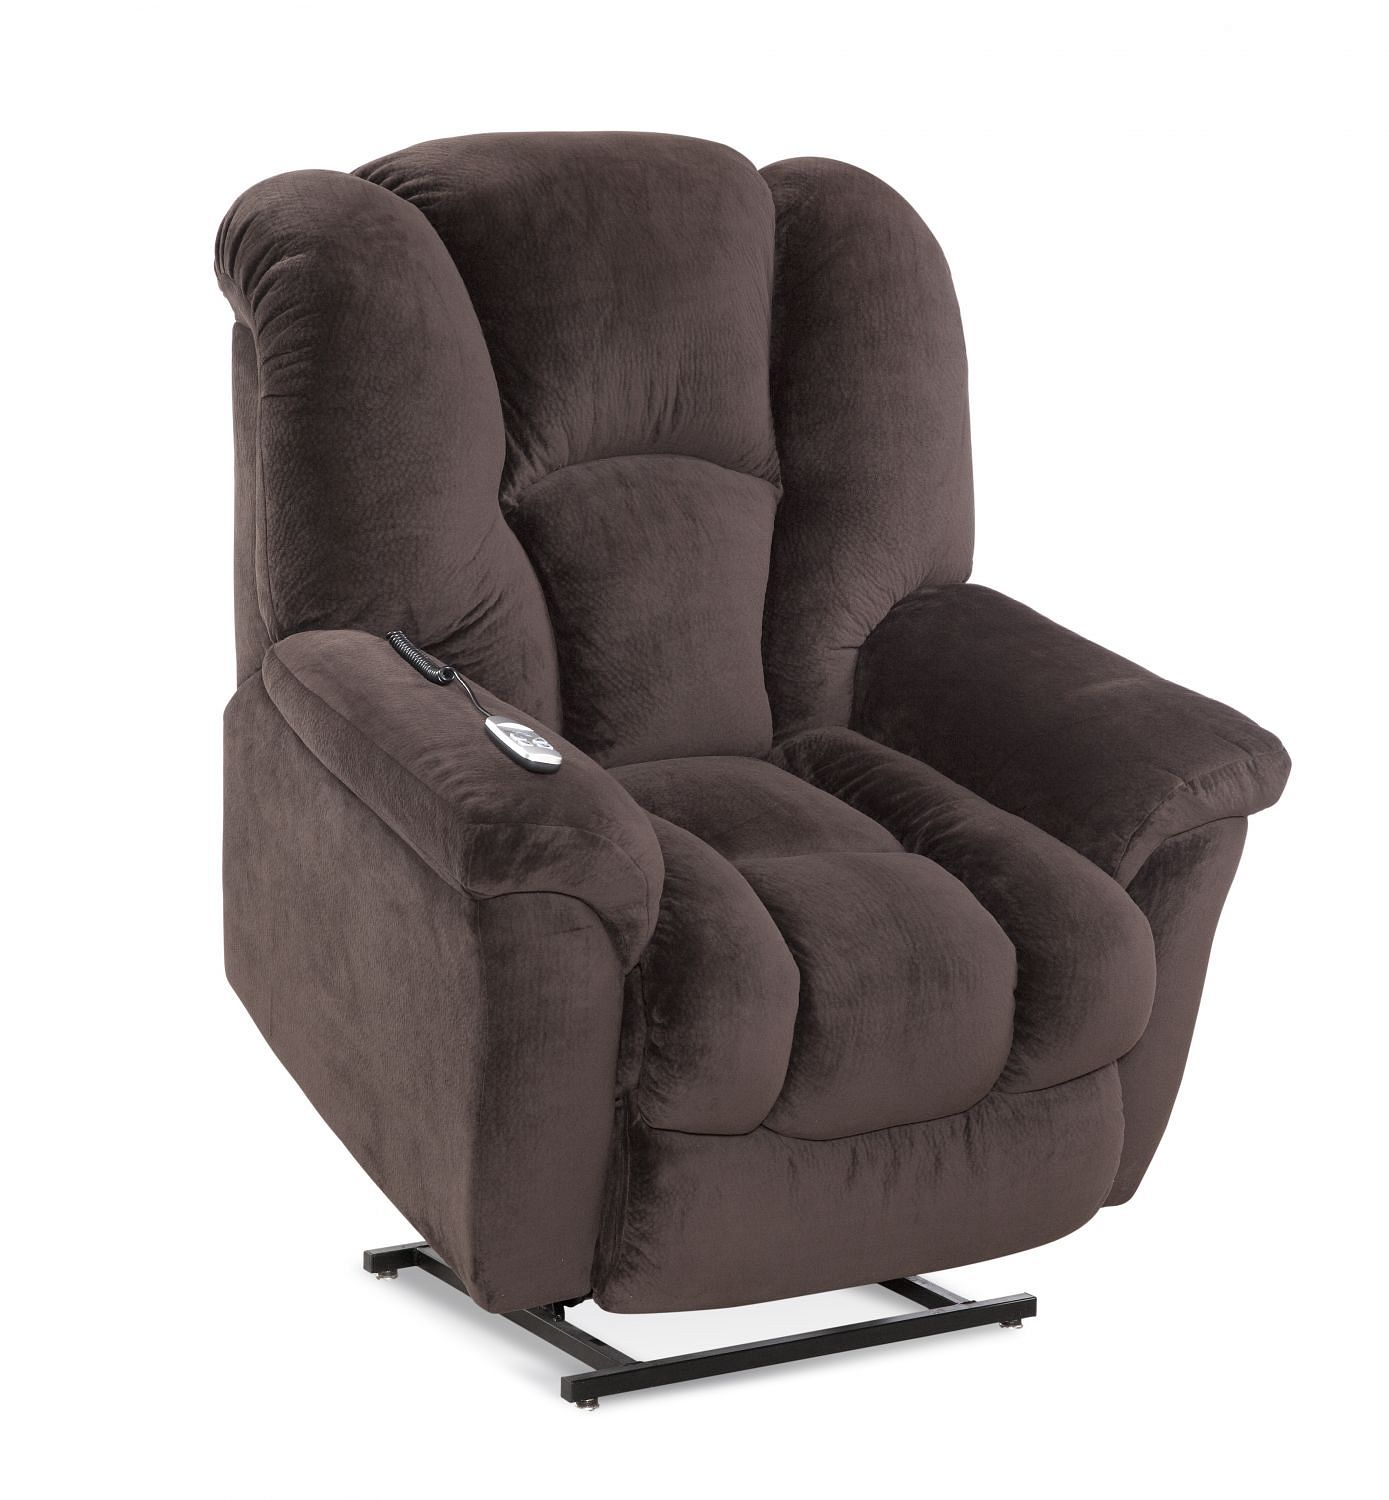 motor chairs elderly mid century modern swivel chair our new line of power lift is perfect for those